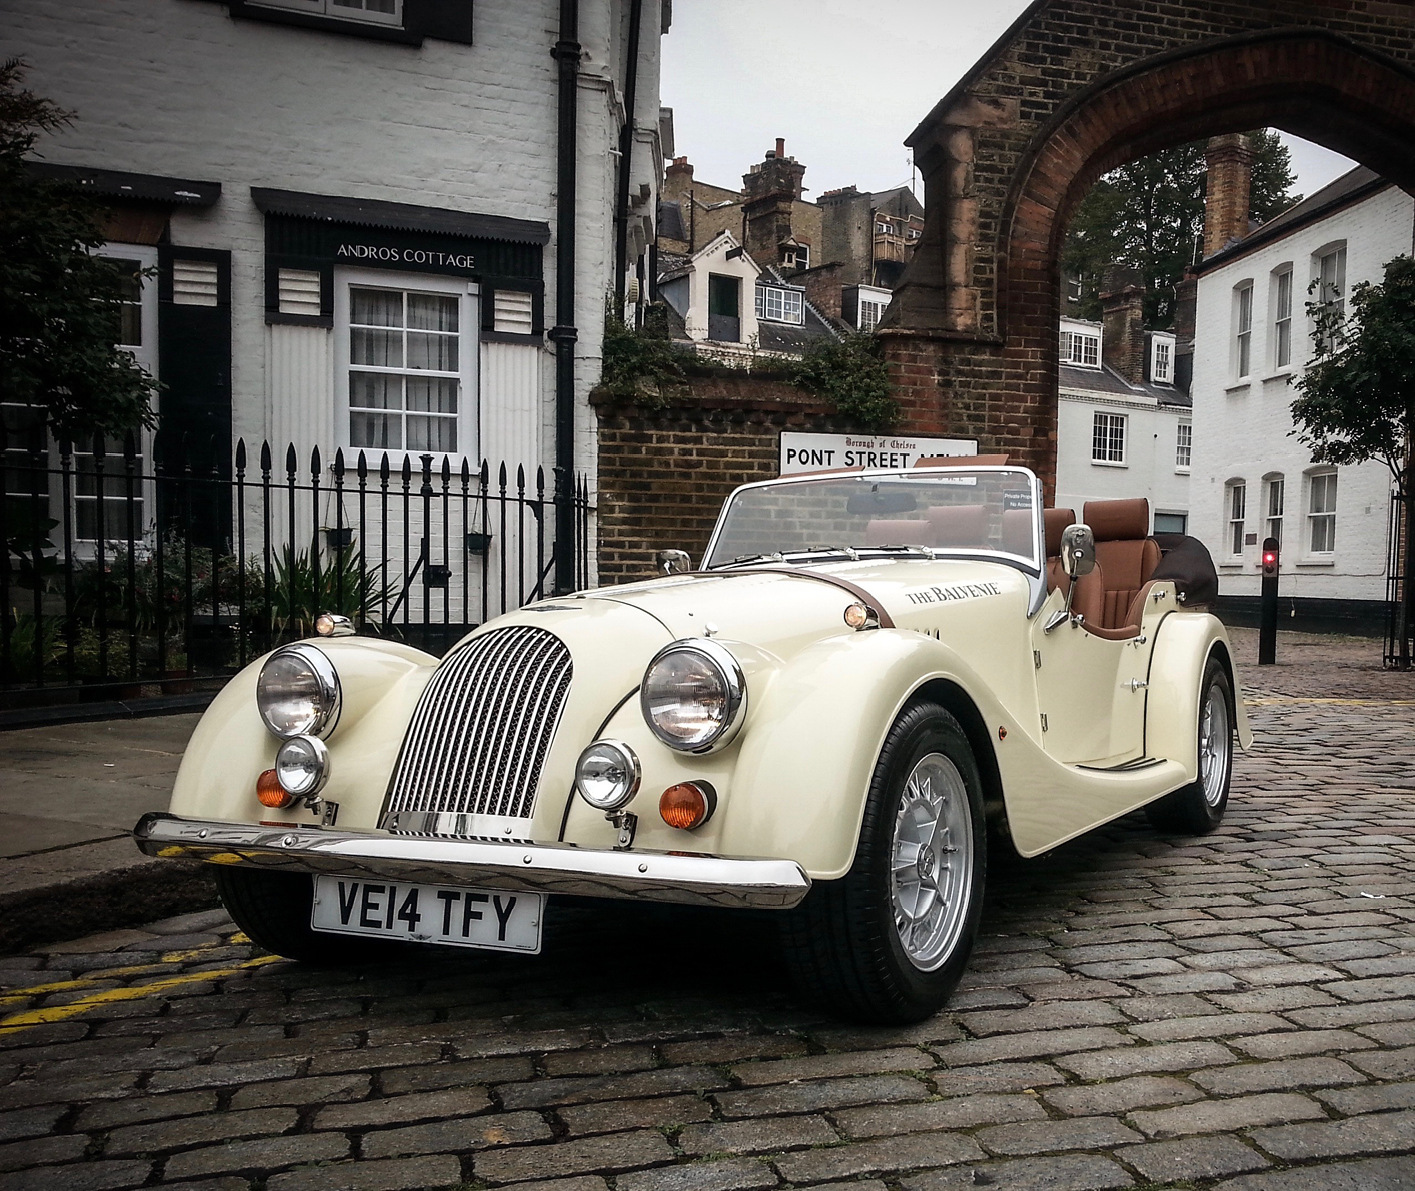 The Balvenie Morgan motorcar is also up for grabs